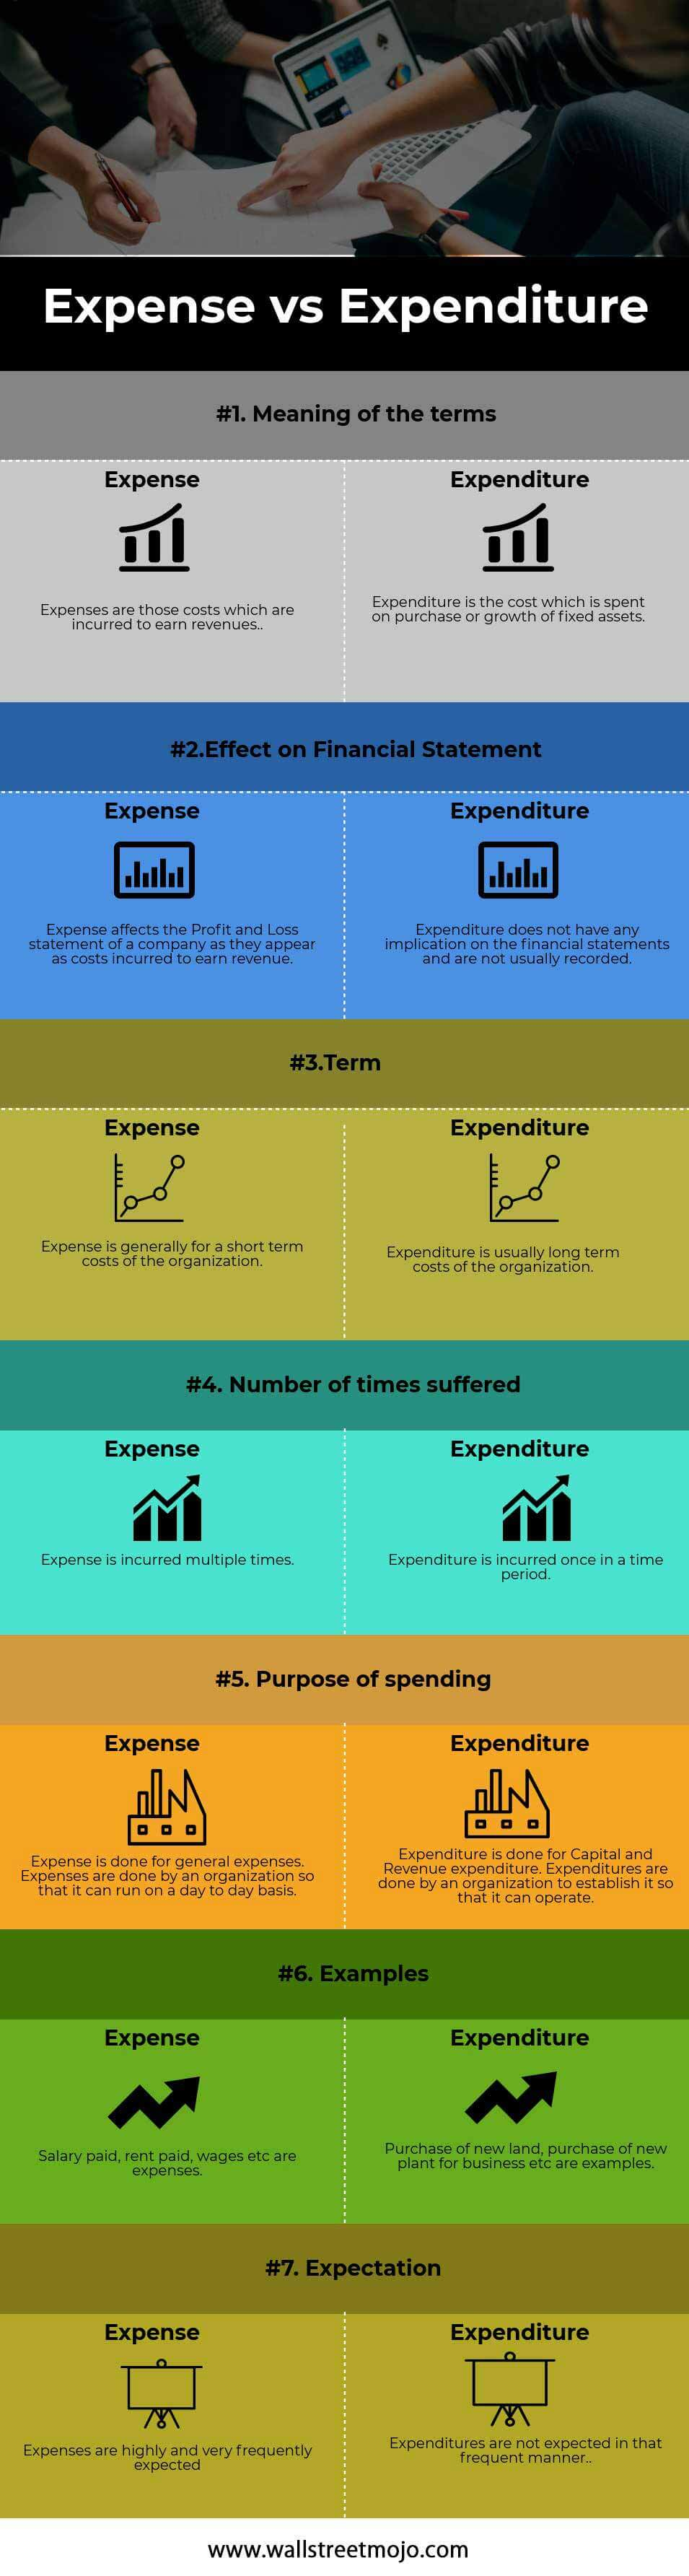 Expense-vs-Expenditure-info